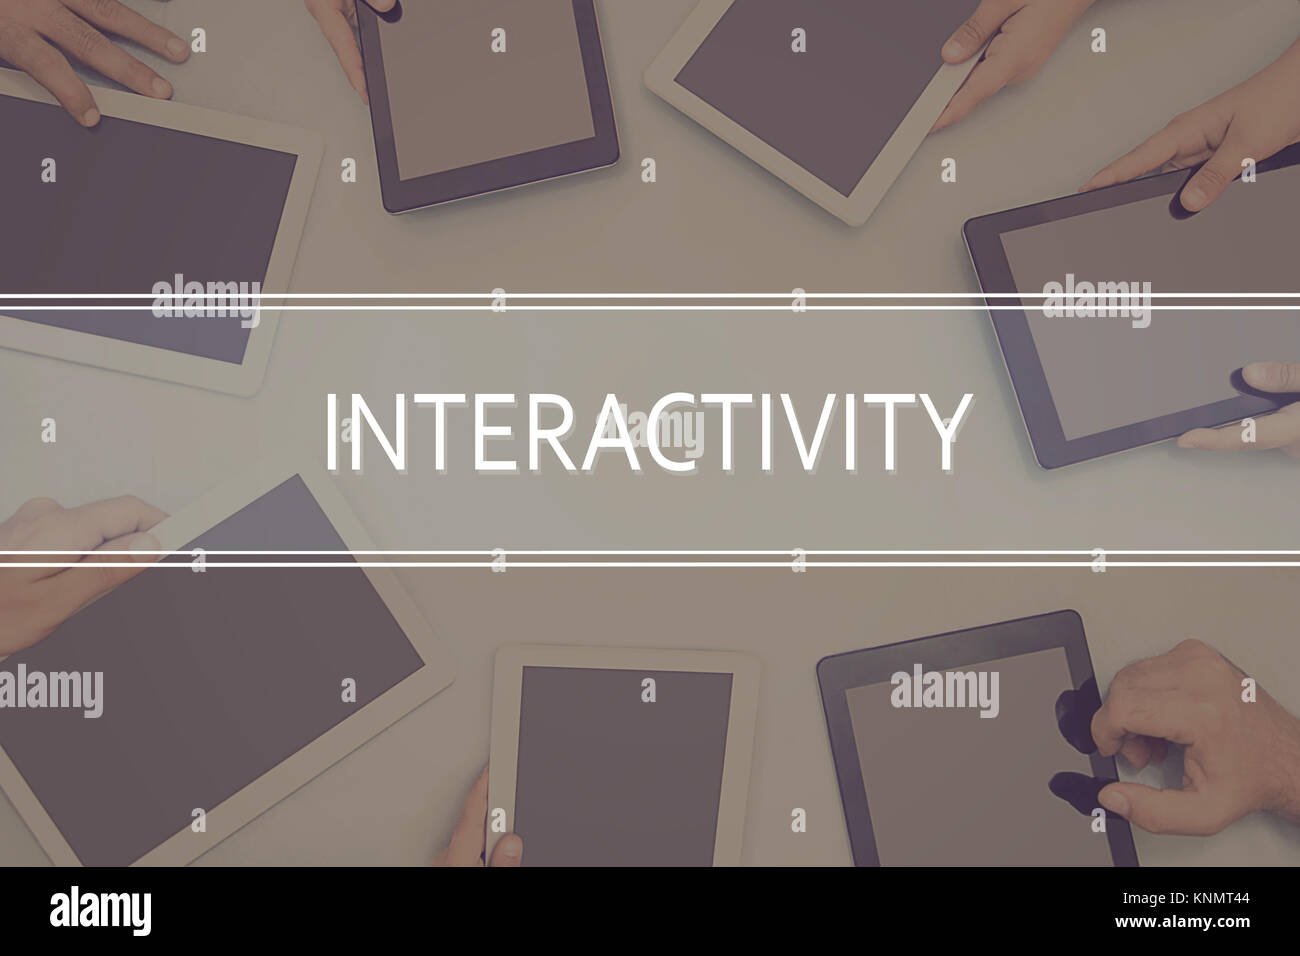 INTERACTIVITY CONCEPT Business Concept. - Stock Image